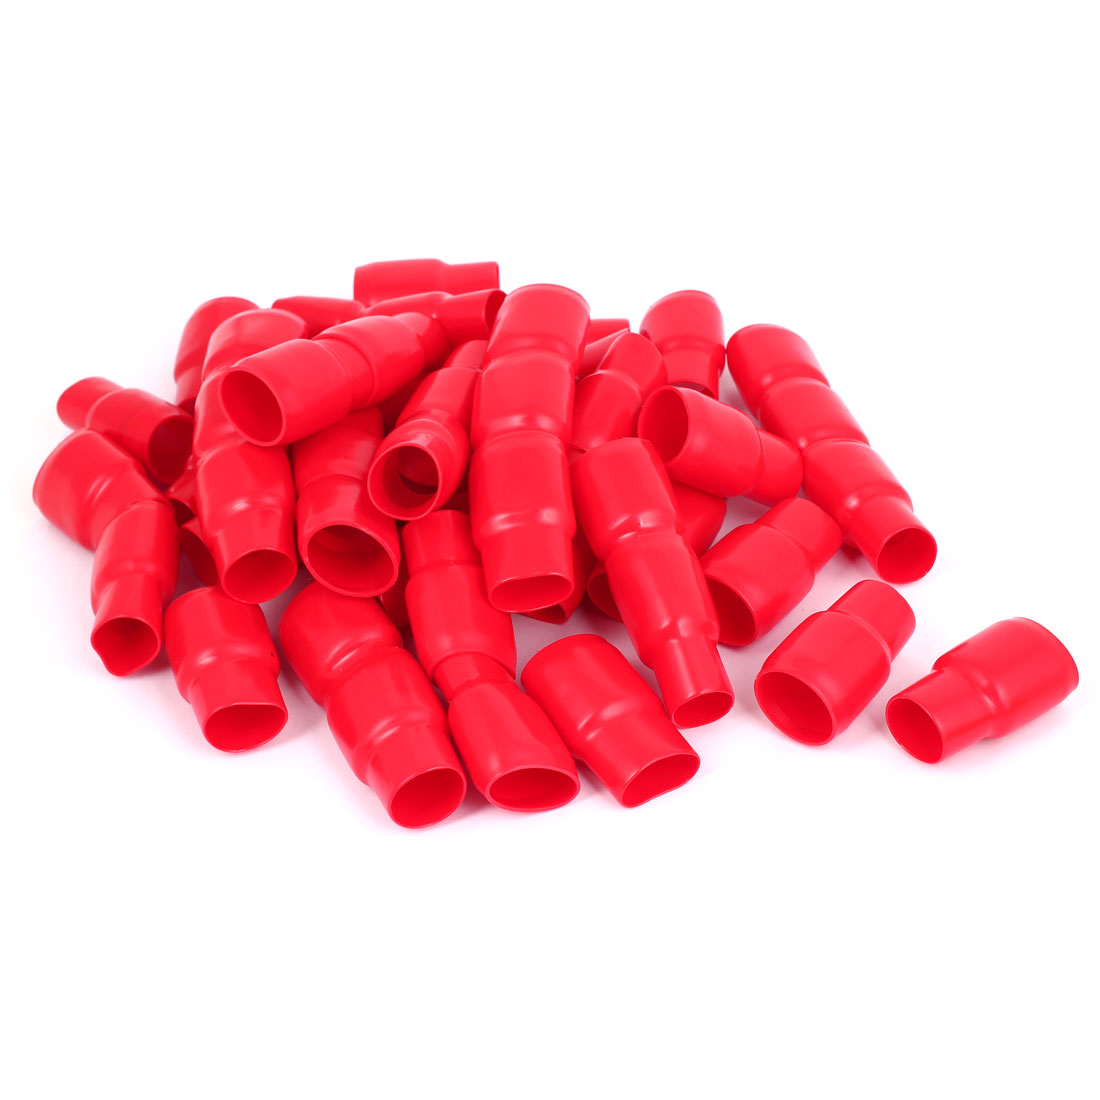 50pcs Red PVC 200mm2 Wire Cord Terminal End Protect Insulated Sleeve Cover Caps - image 1 of 1